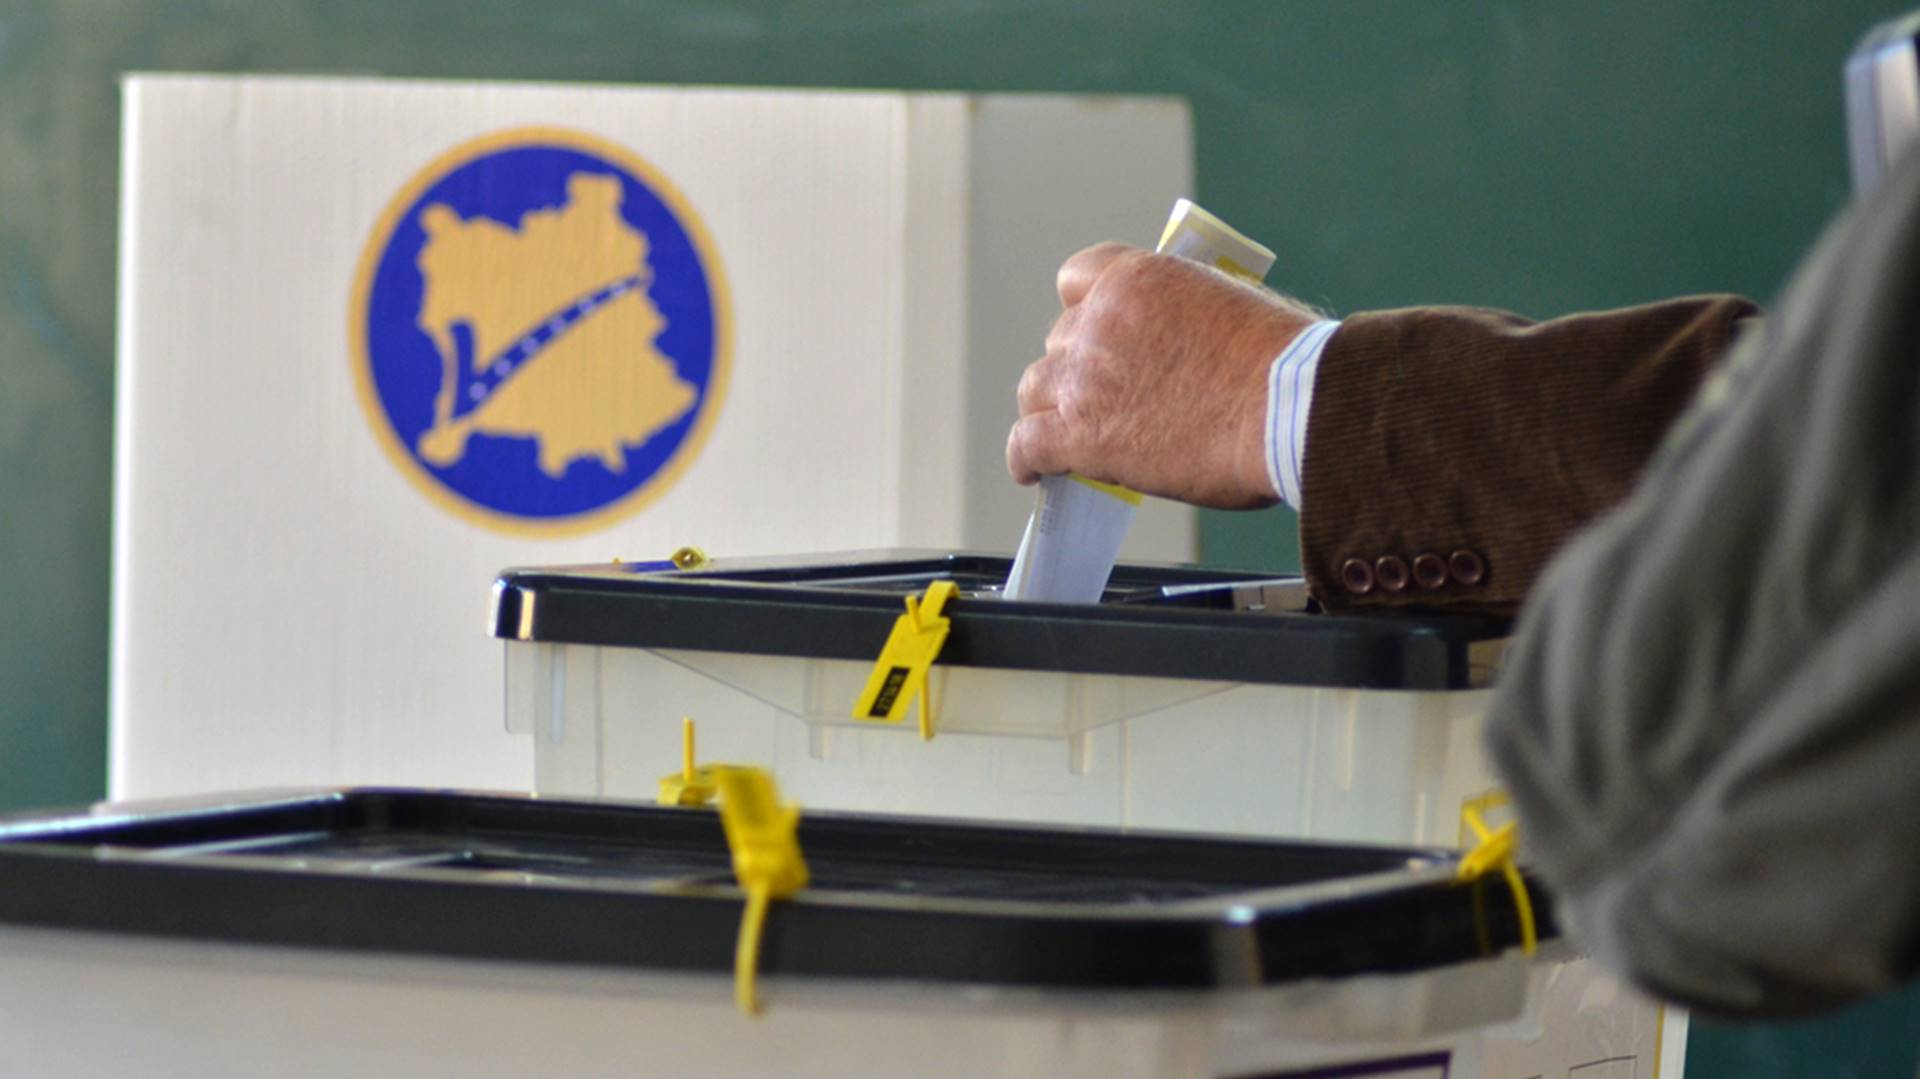 2021 Early Elections in Kosovo: End of an era